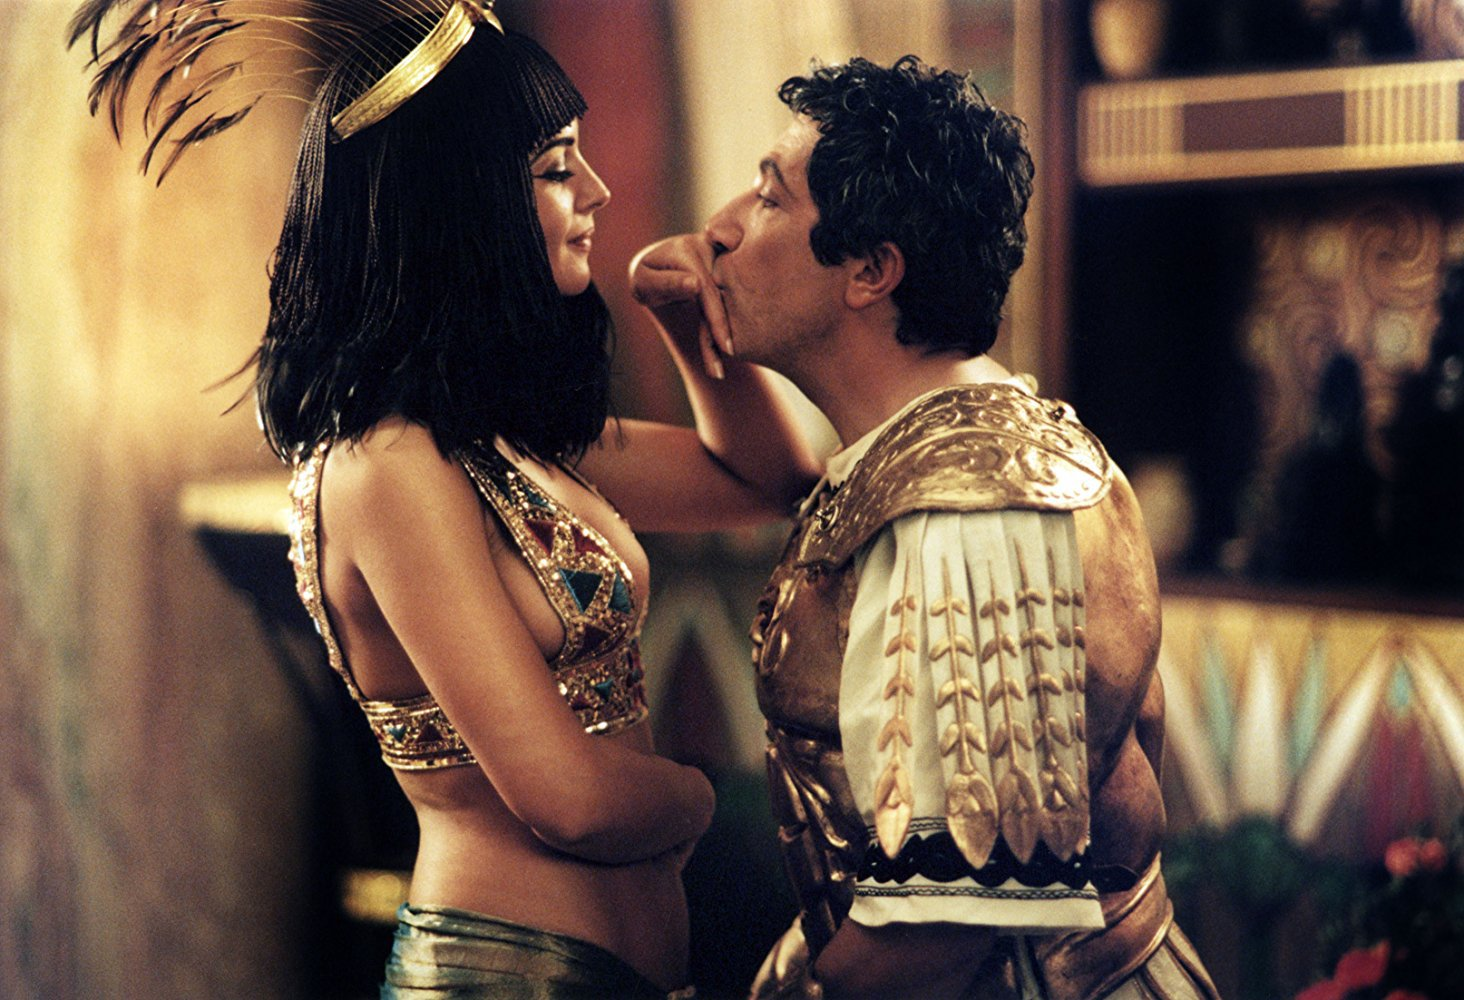 asterix and obelix meet cleopatra movie online watch